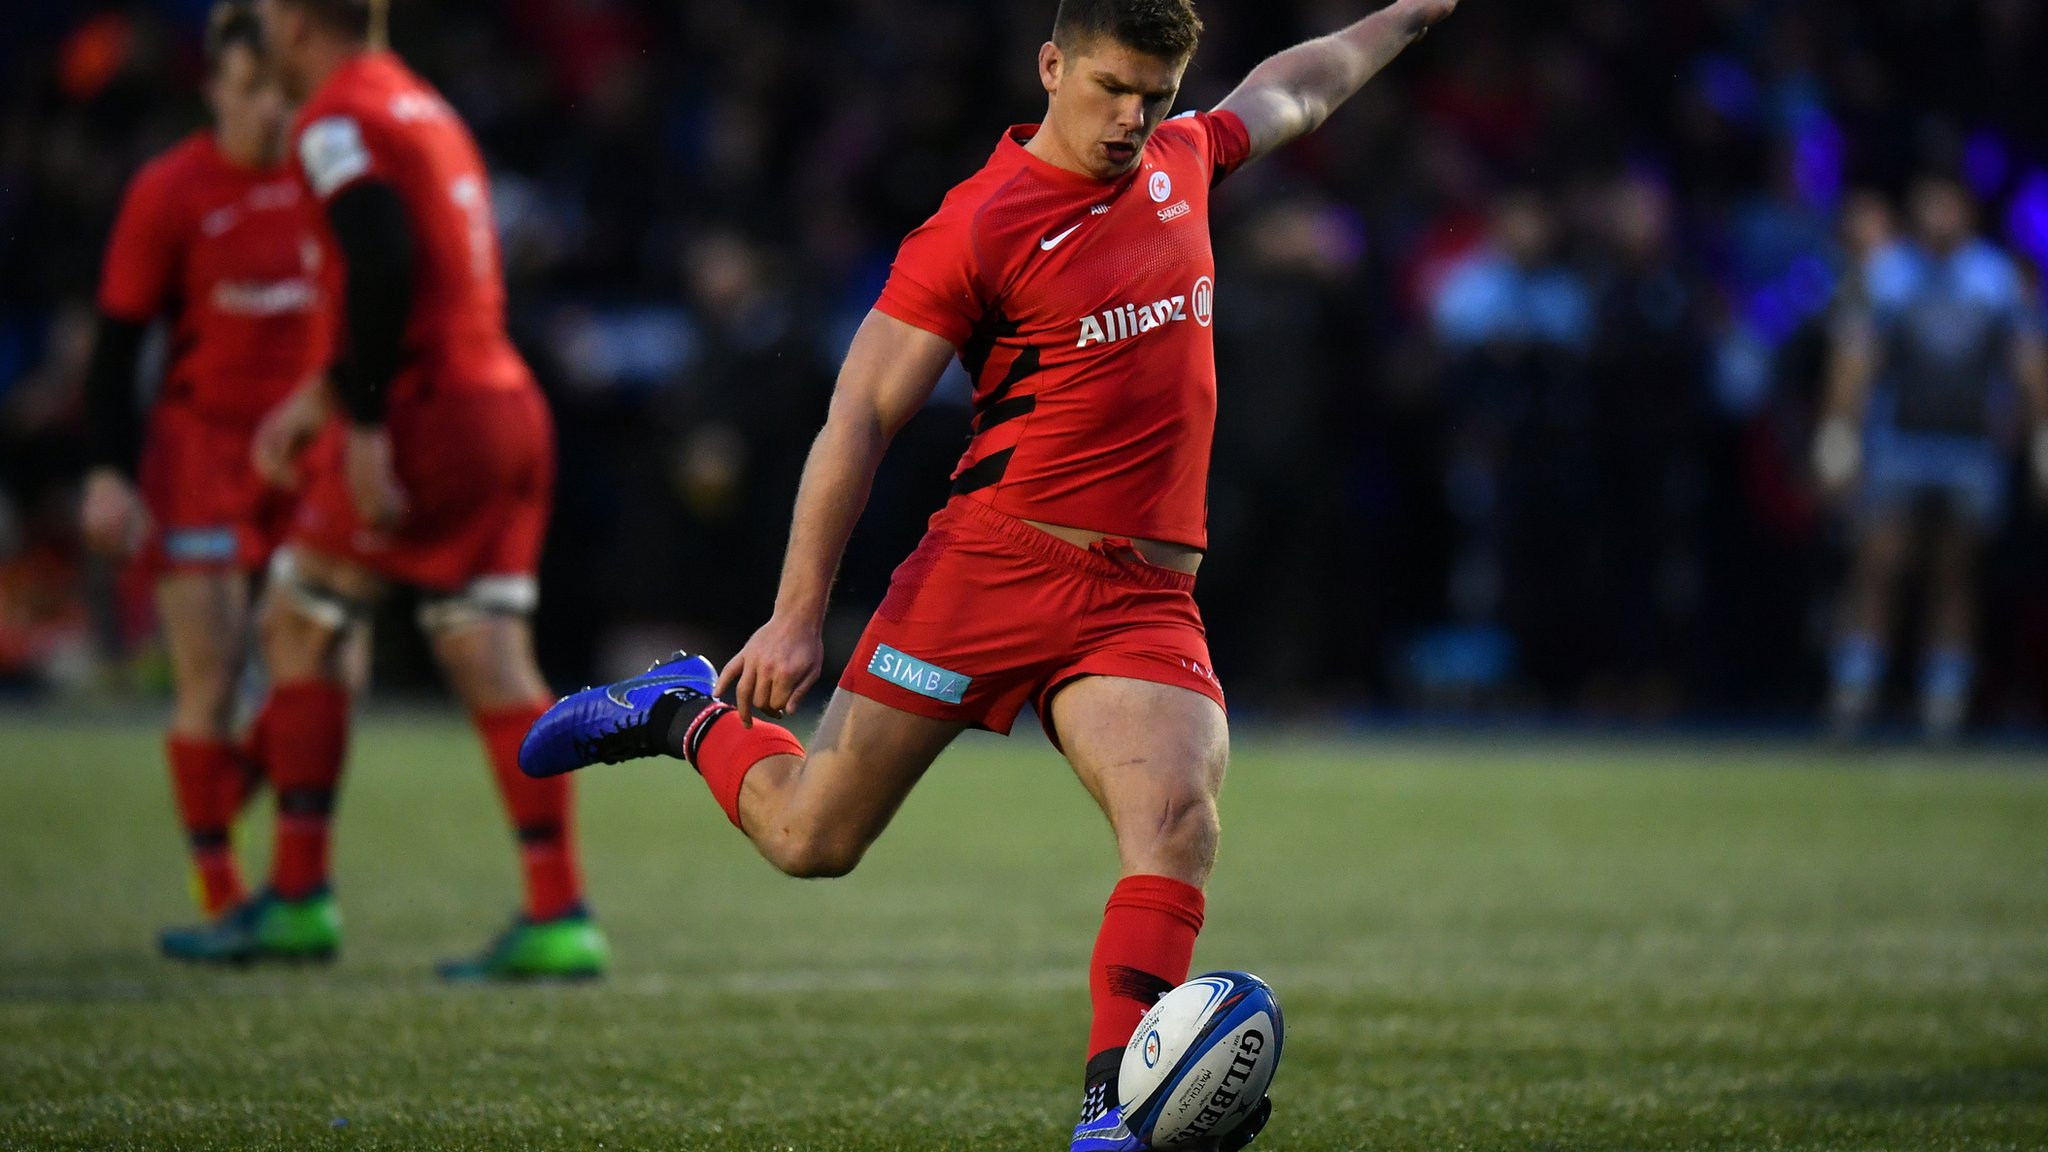 European Rugby Champions Cup: Cardiff Blues 14-26 Saracens